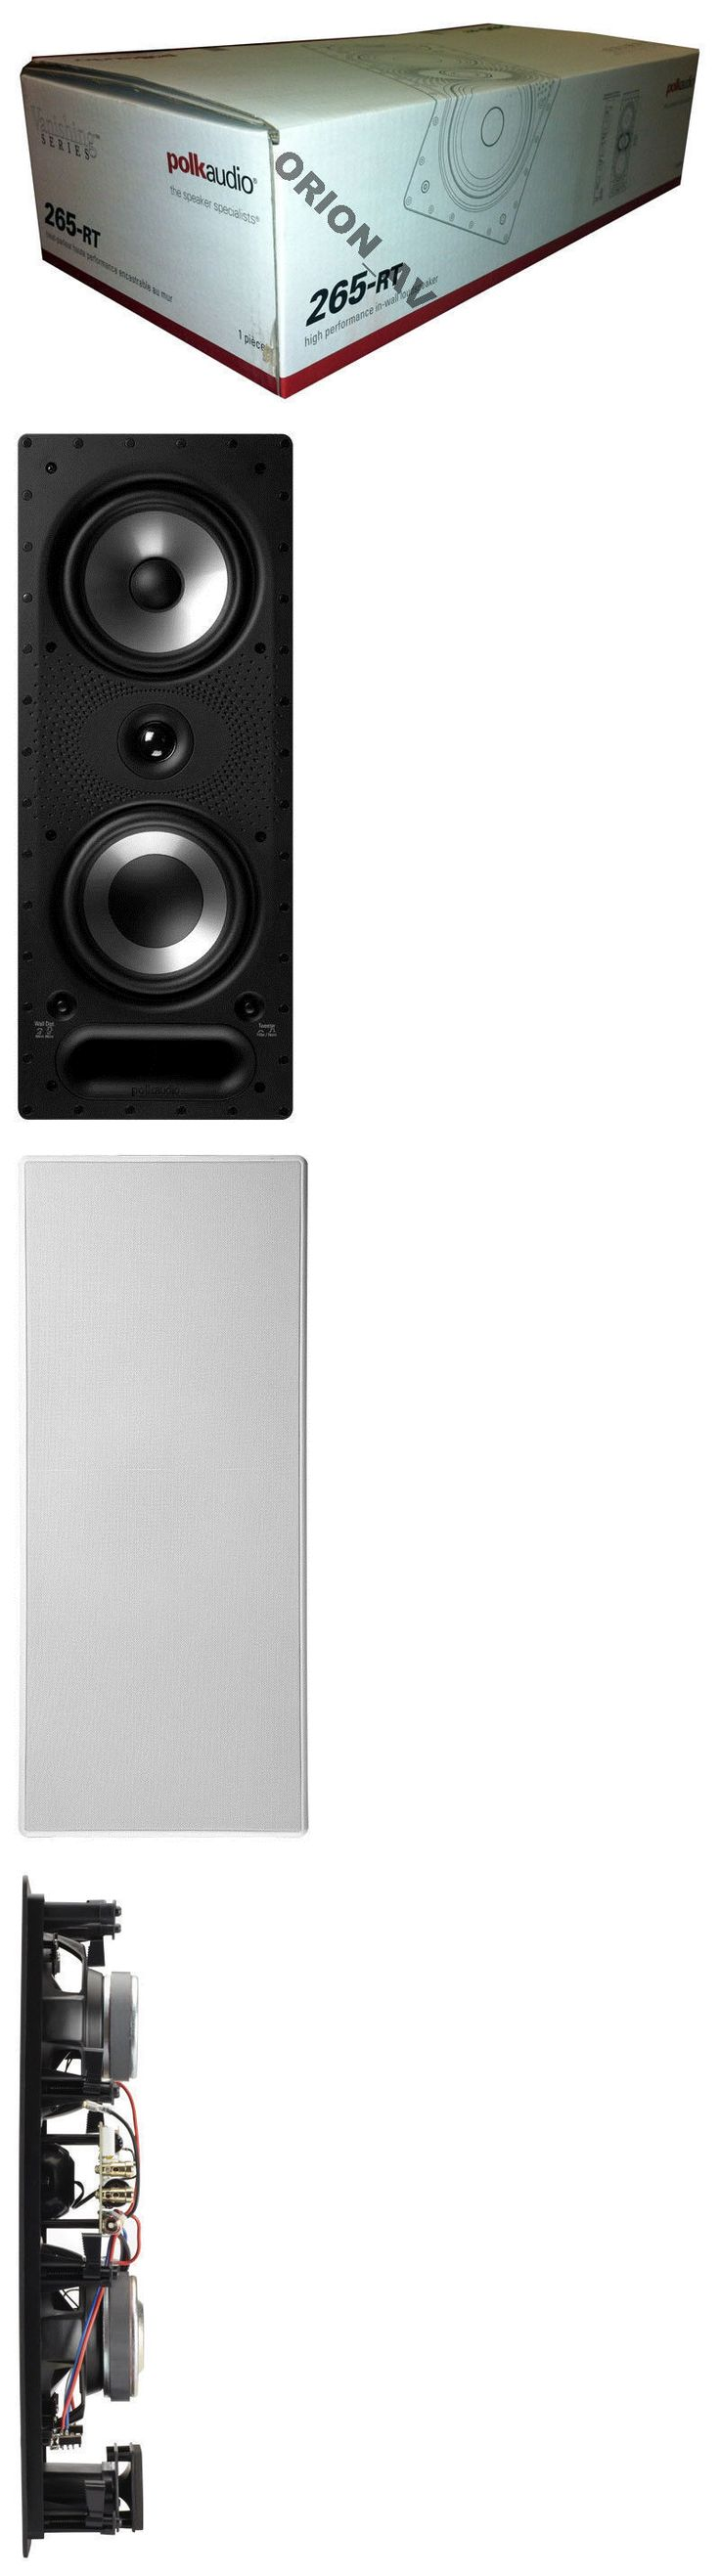 Home Speakers and Subwoofers: Polk Audio 265-Rt 3-Way Rectangular In Wall Speaker White (Each) 265Rt Brand New -> BUY IT NOW ONLY: $199 on eBay!